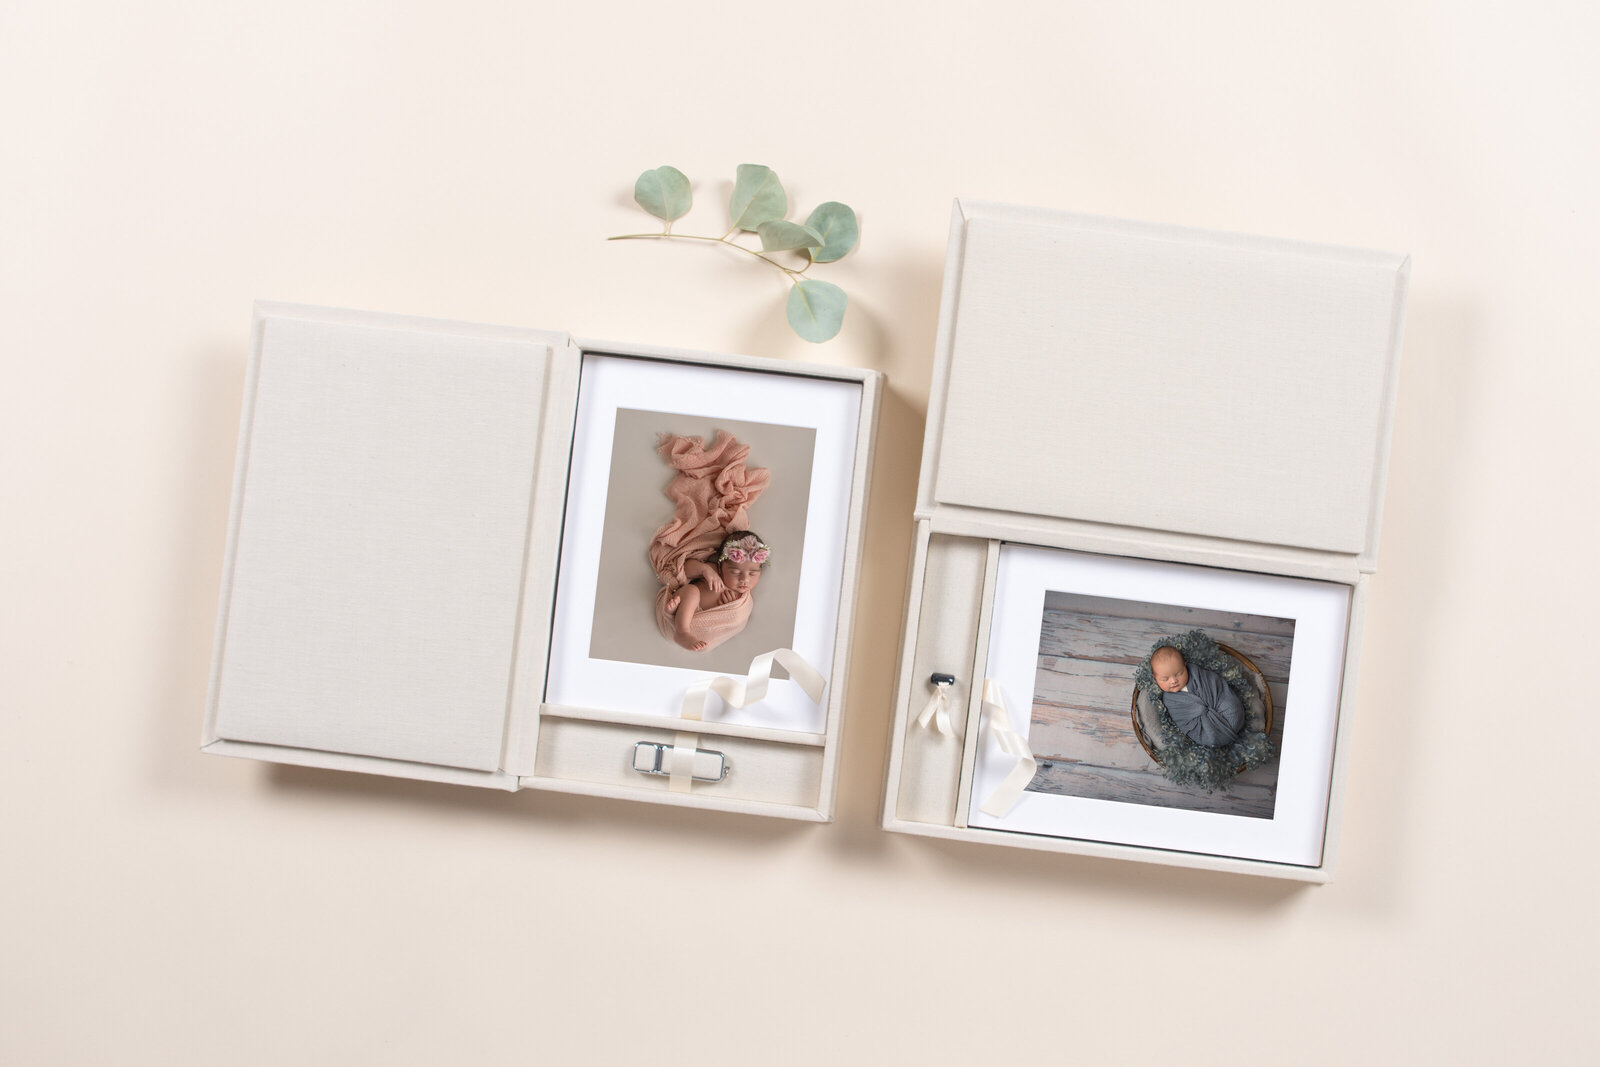 Printed Portrait Box with Matted Photographs